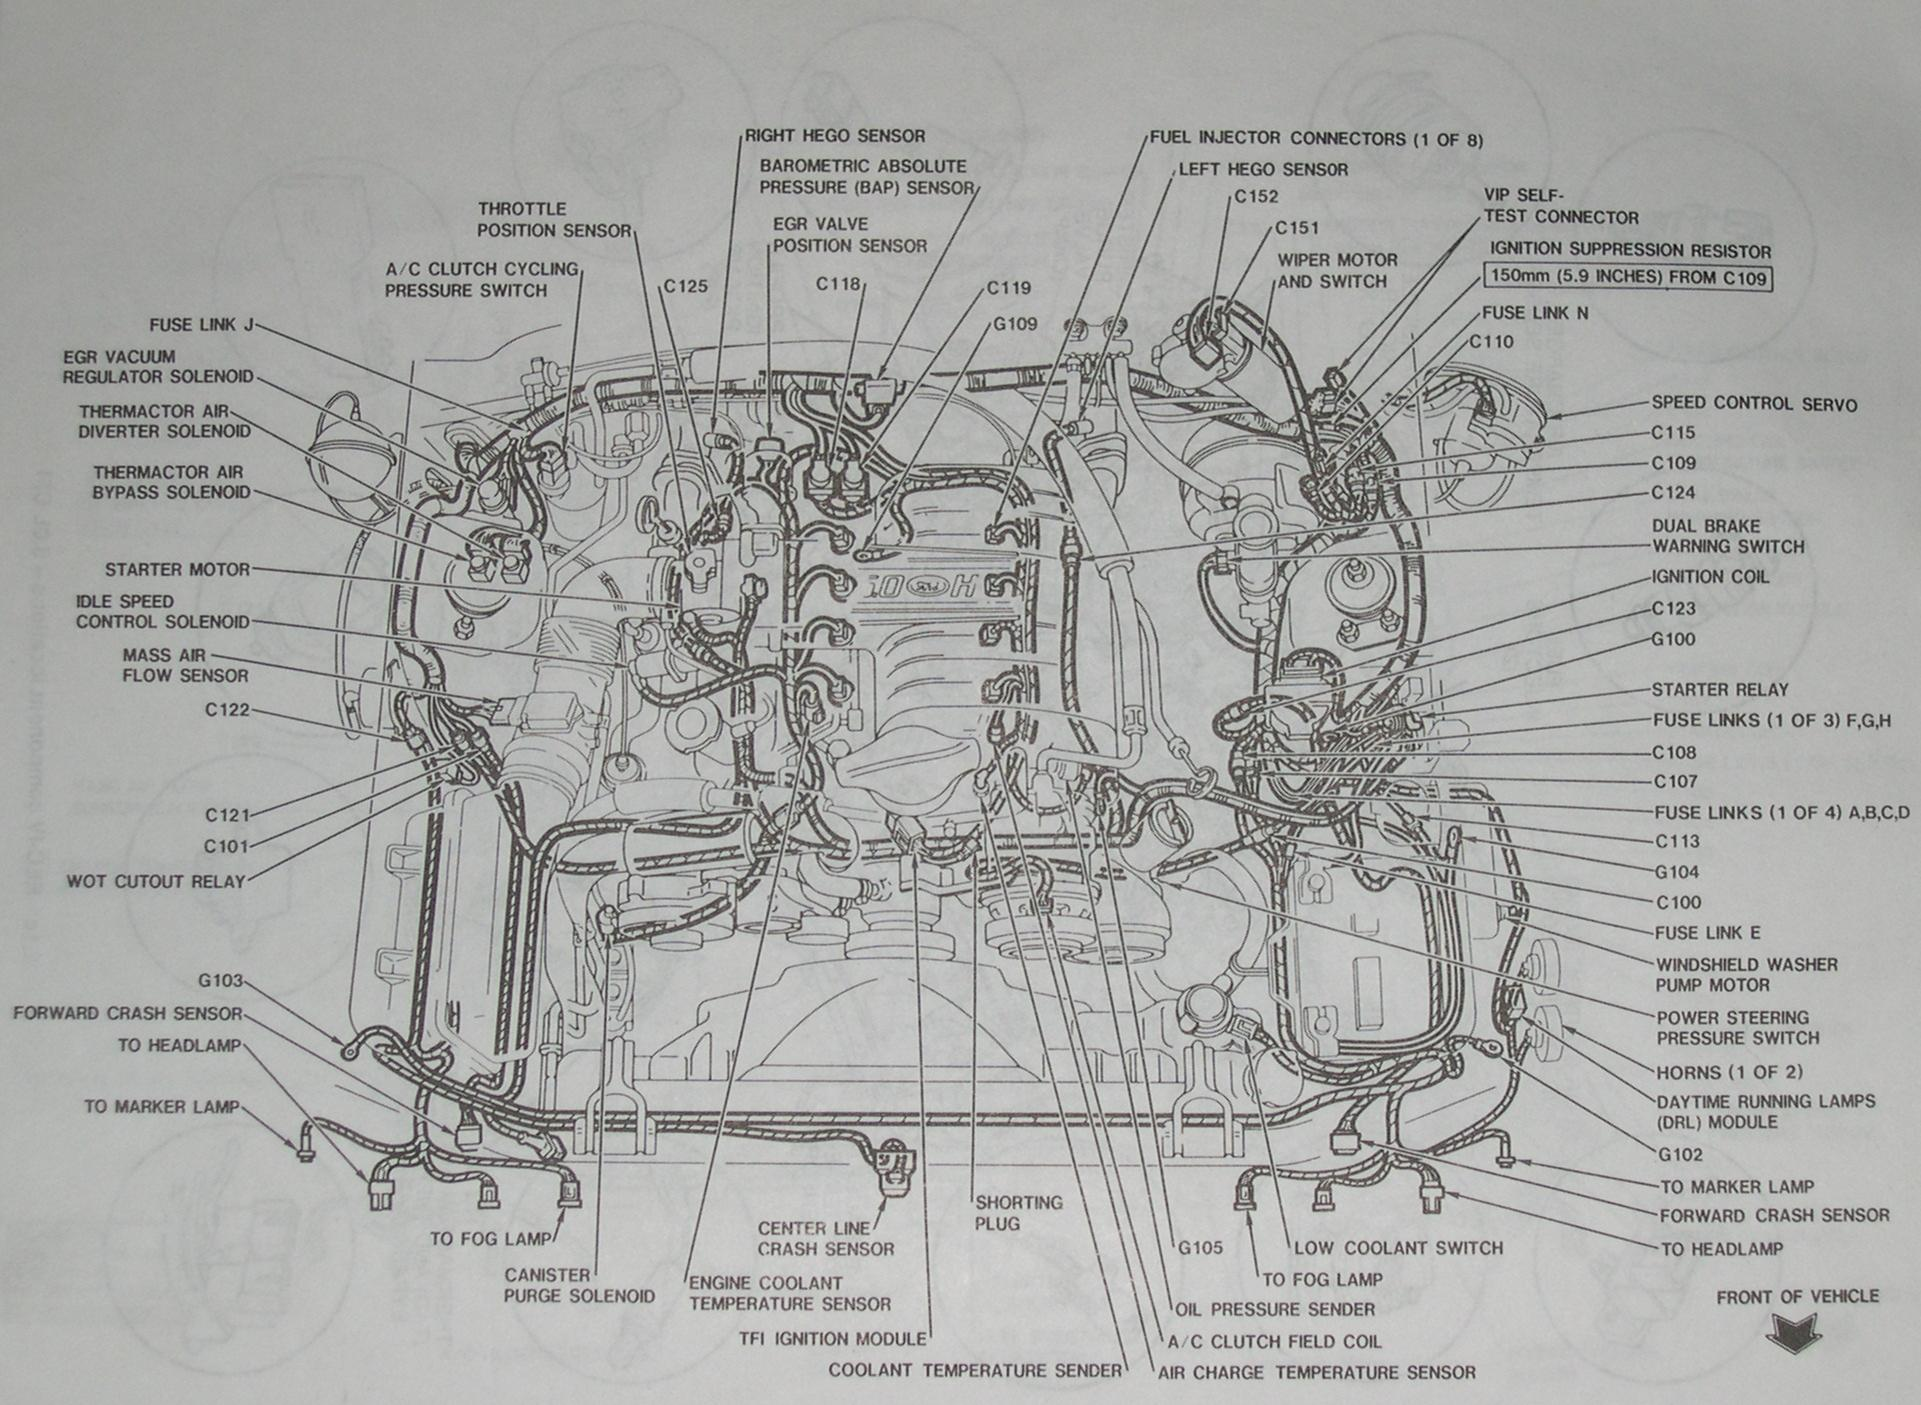 95 mustang wiring harness electrical schematic wiring diagram 1995 ford mustang gt wiring harness 1990 mustang [ 1921 x 1405 Pixel ]